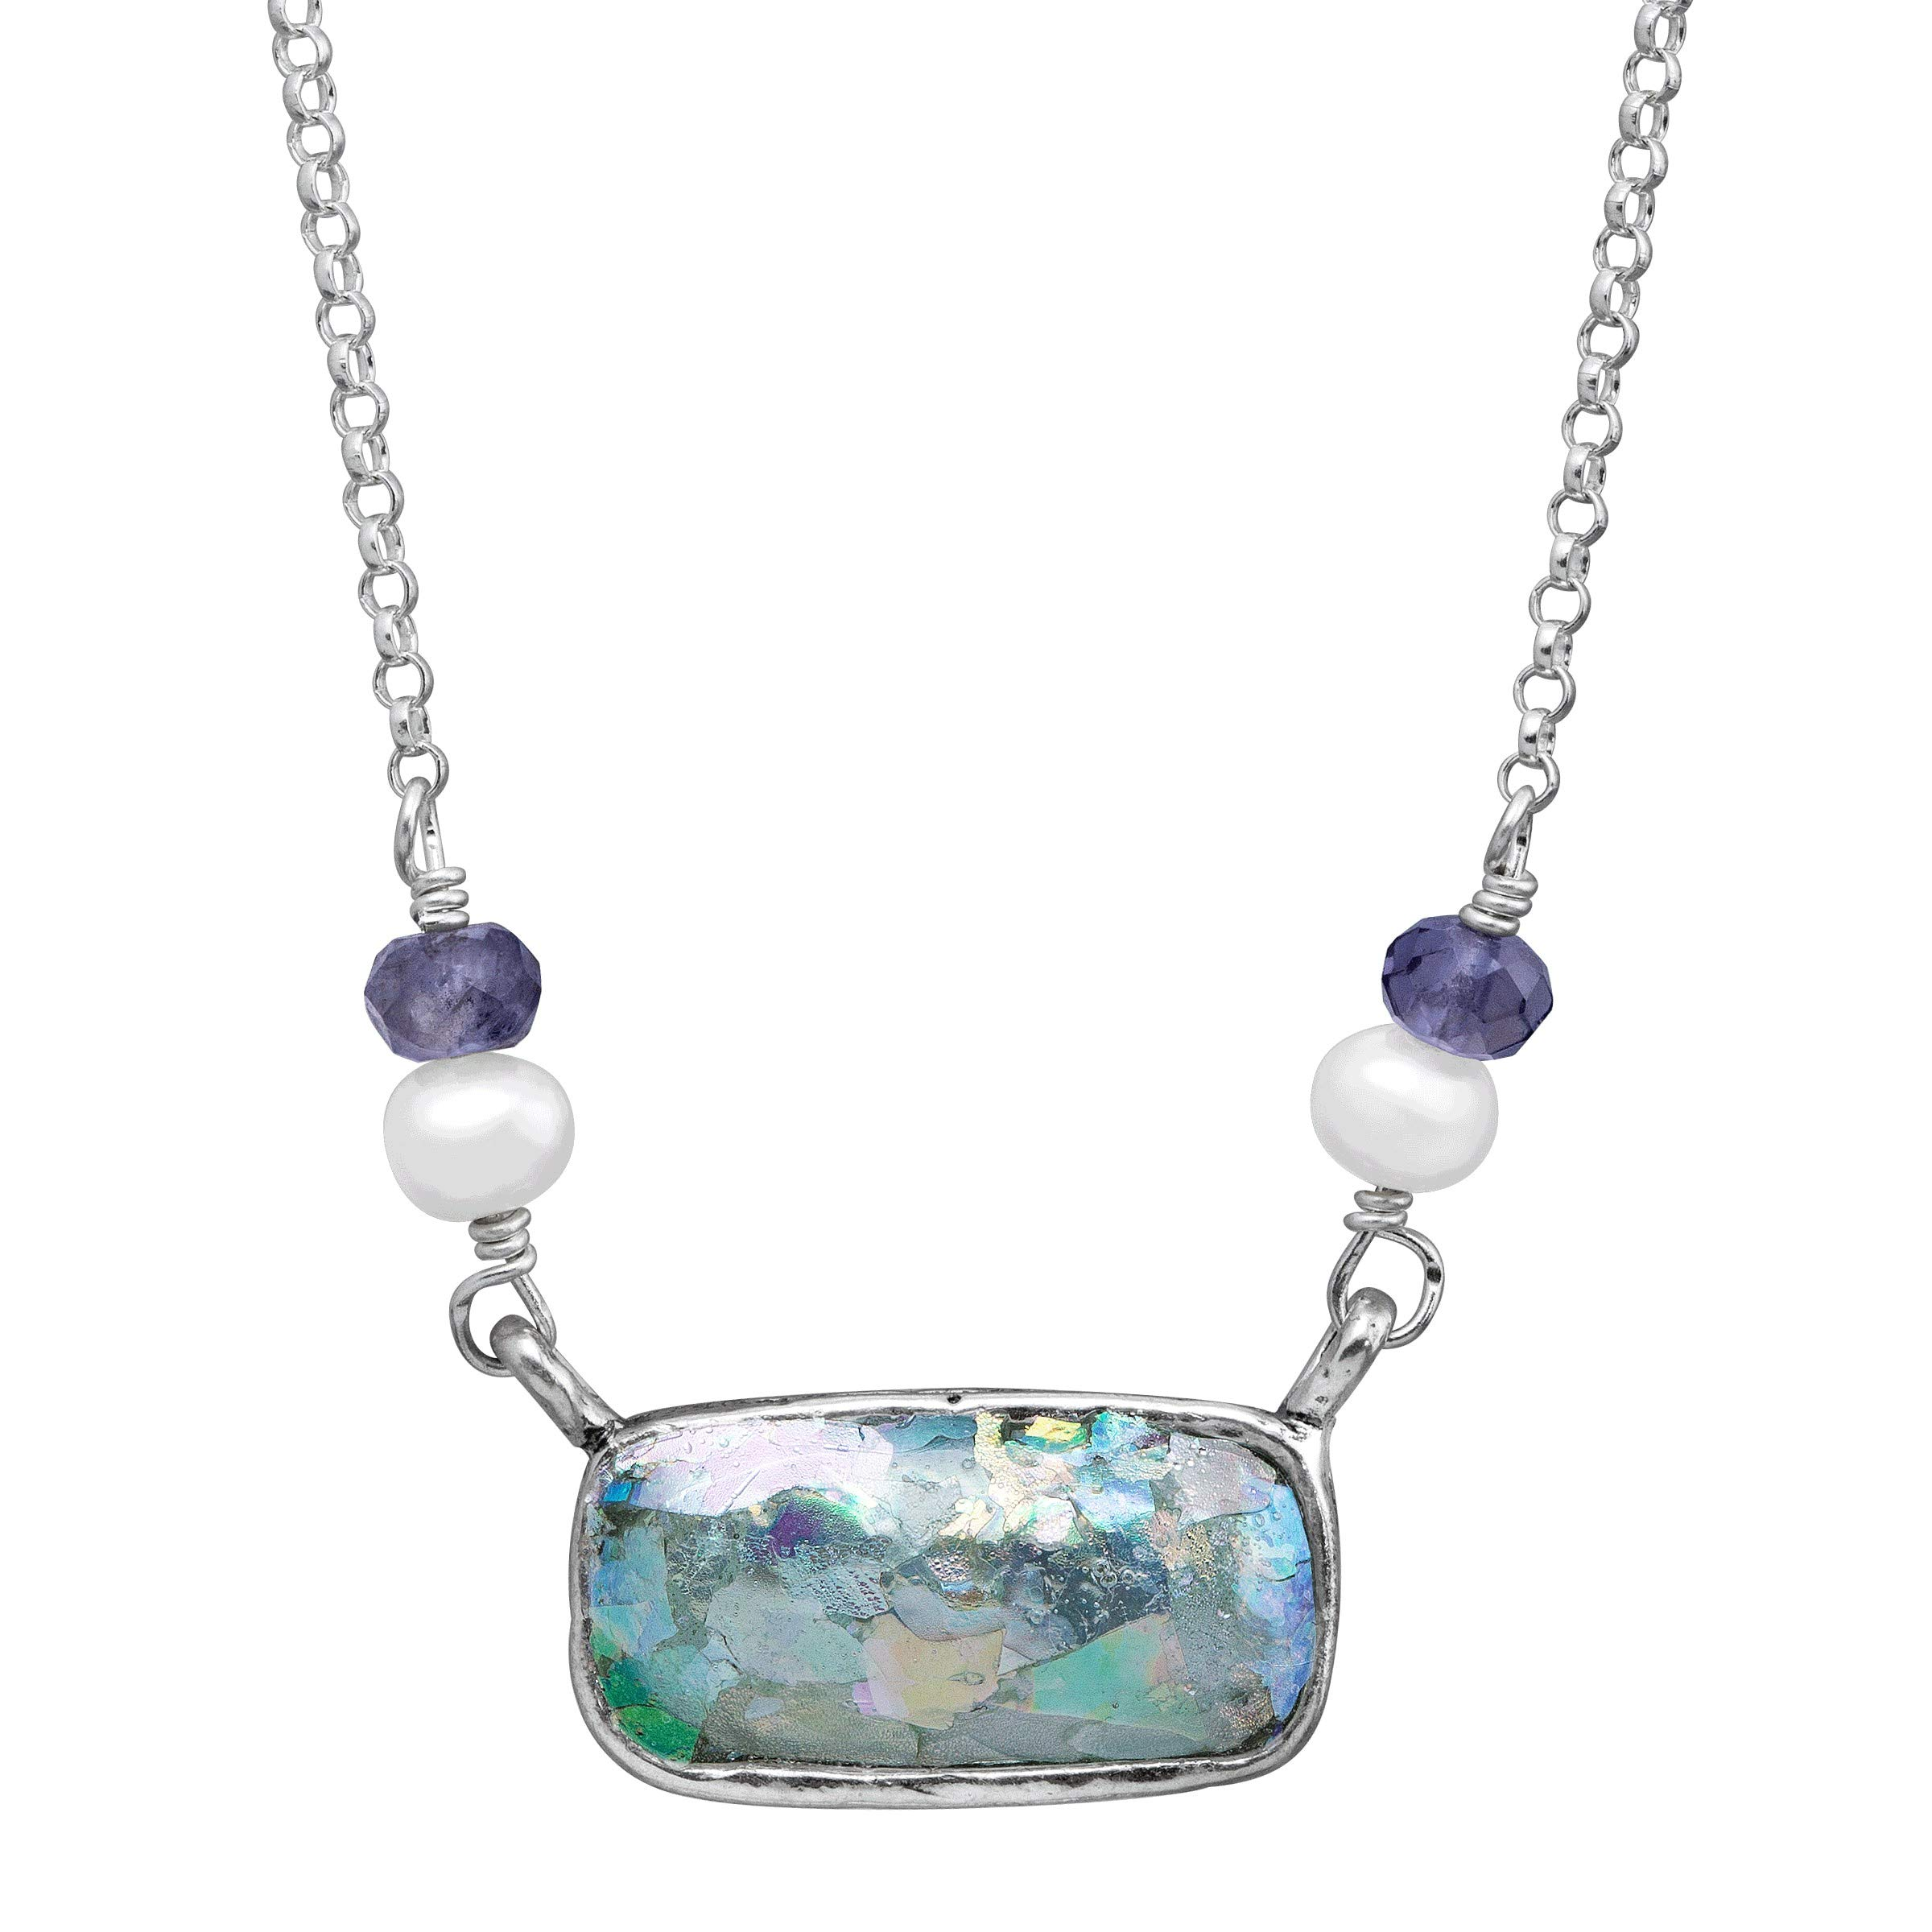 Silpada 'Pons Drusi' 4-4.5 mm Freshwater Cultured Pearl & Roman Glass & Natural Iolite Necklace in Sterling Silver by Silpada